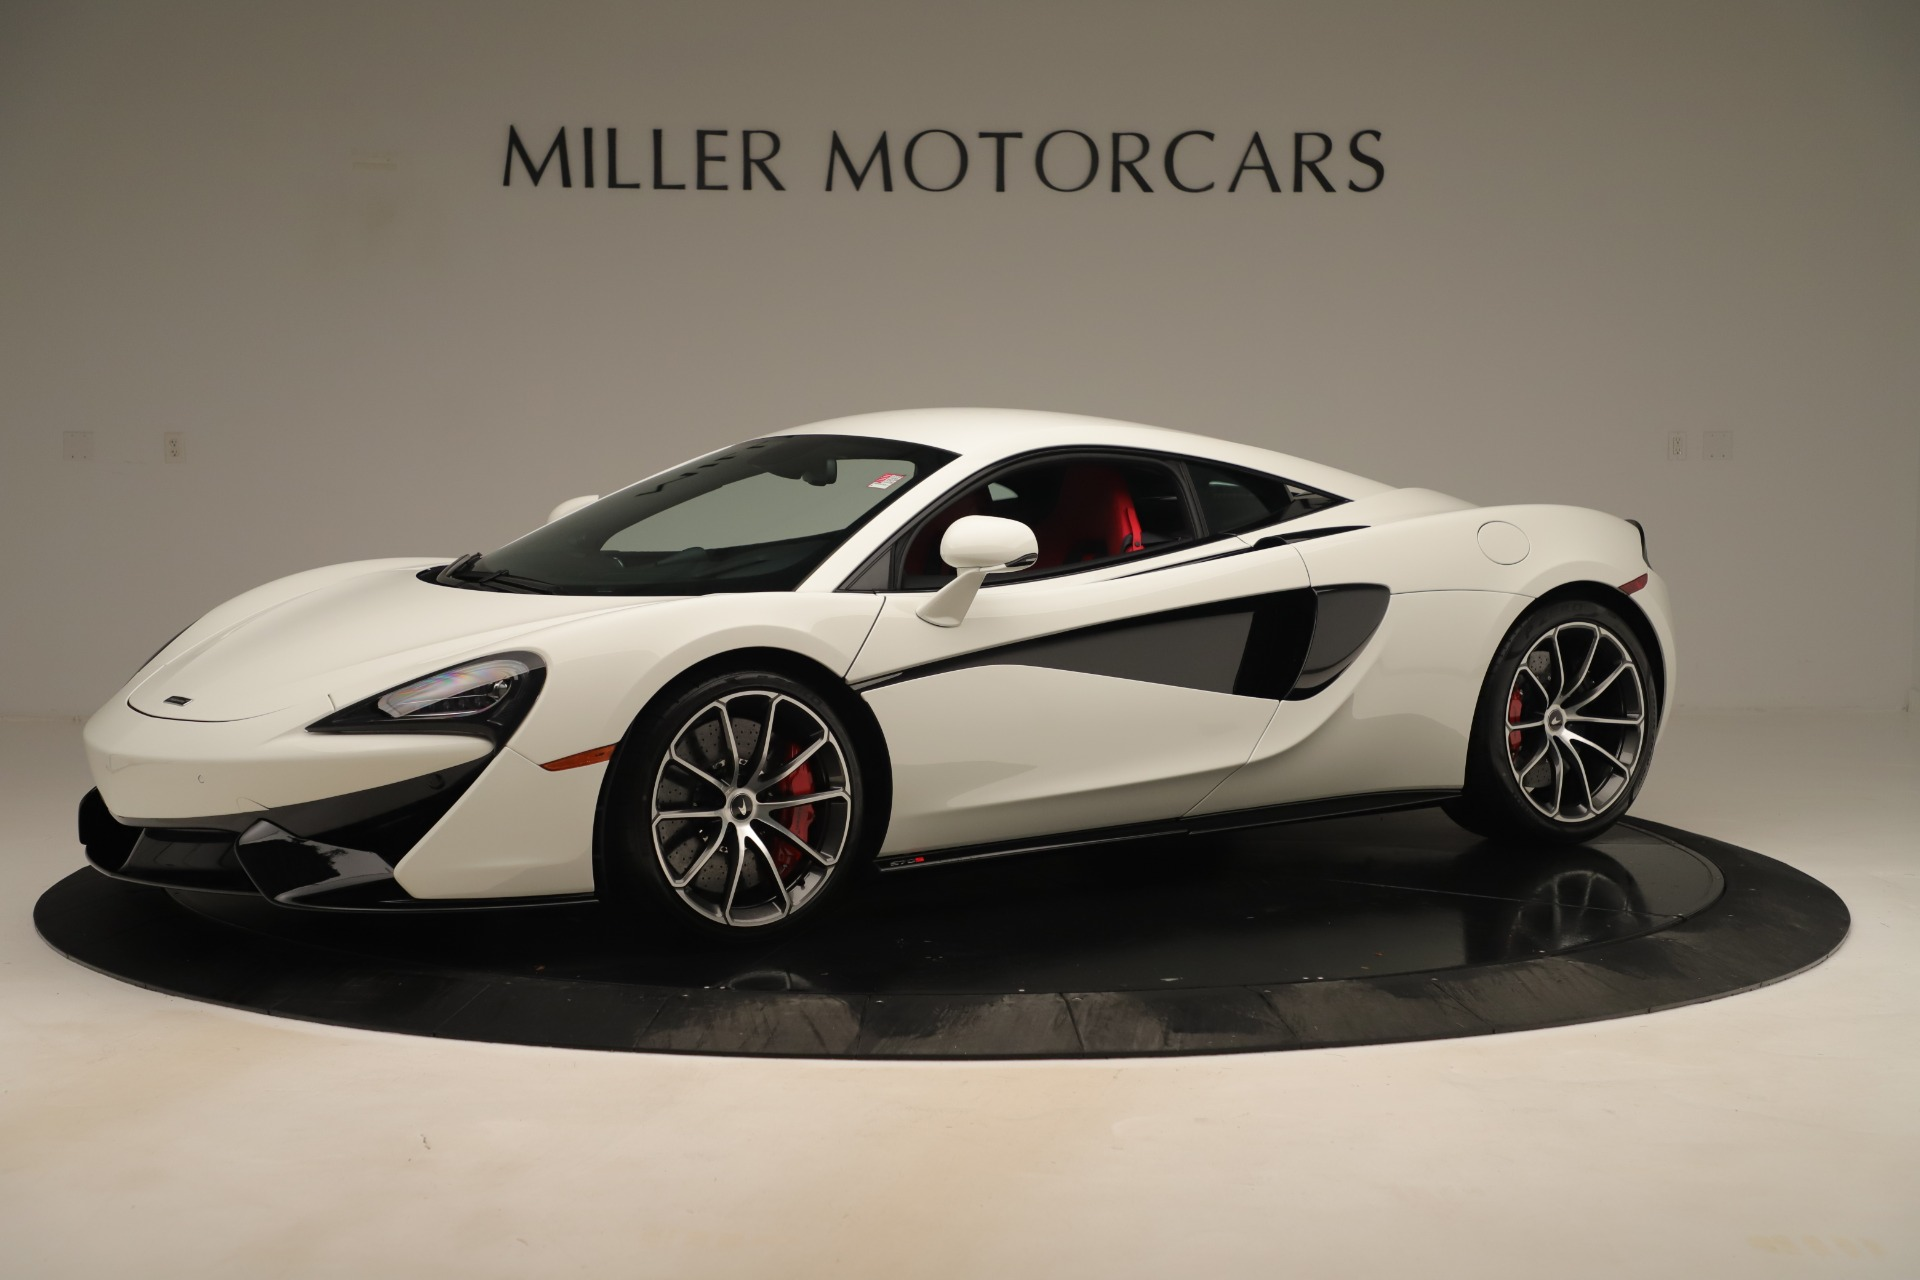 New 2020 McLaren 570S Coupe for sale $215,600 at Bugatti of Greenwich in Greenwich CT 06830 1